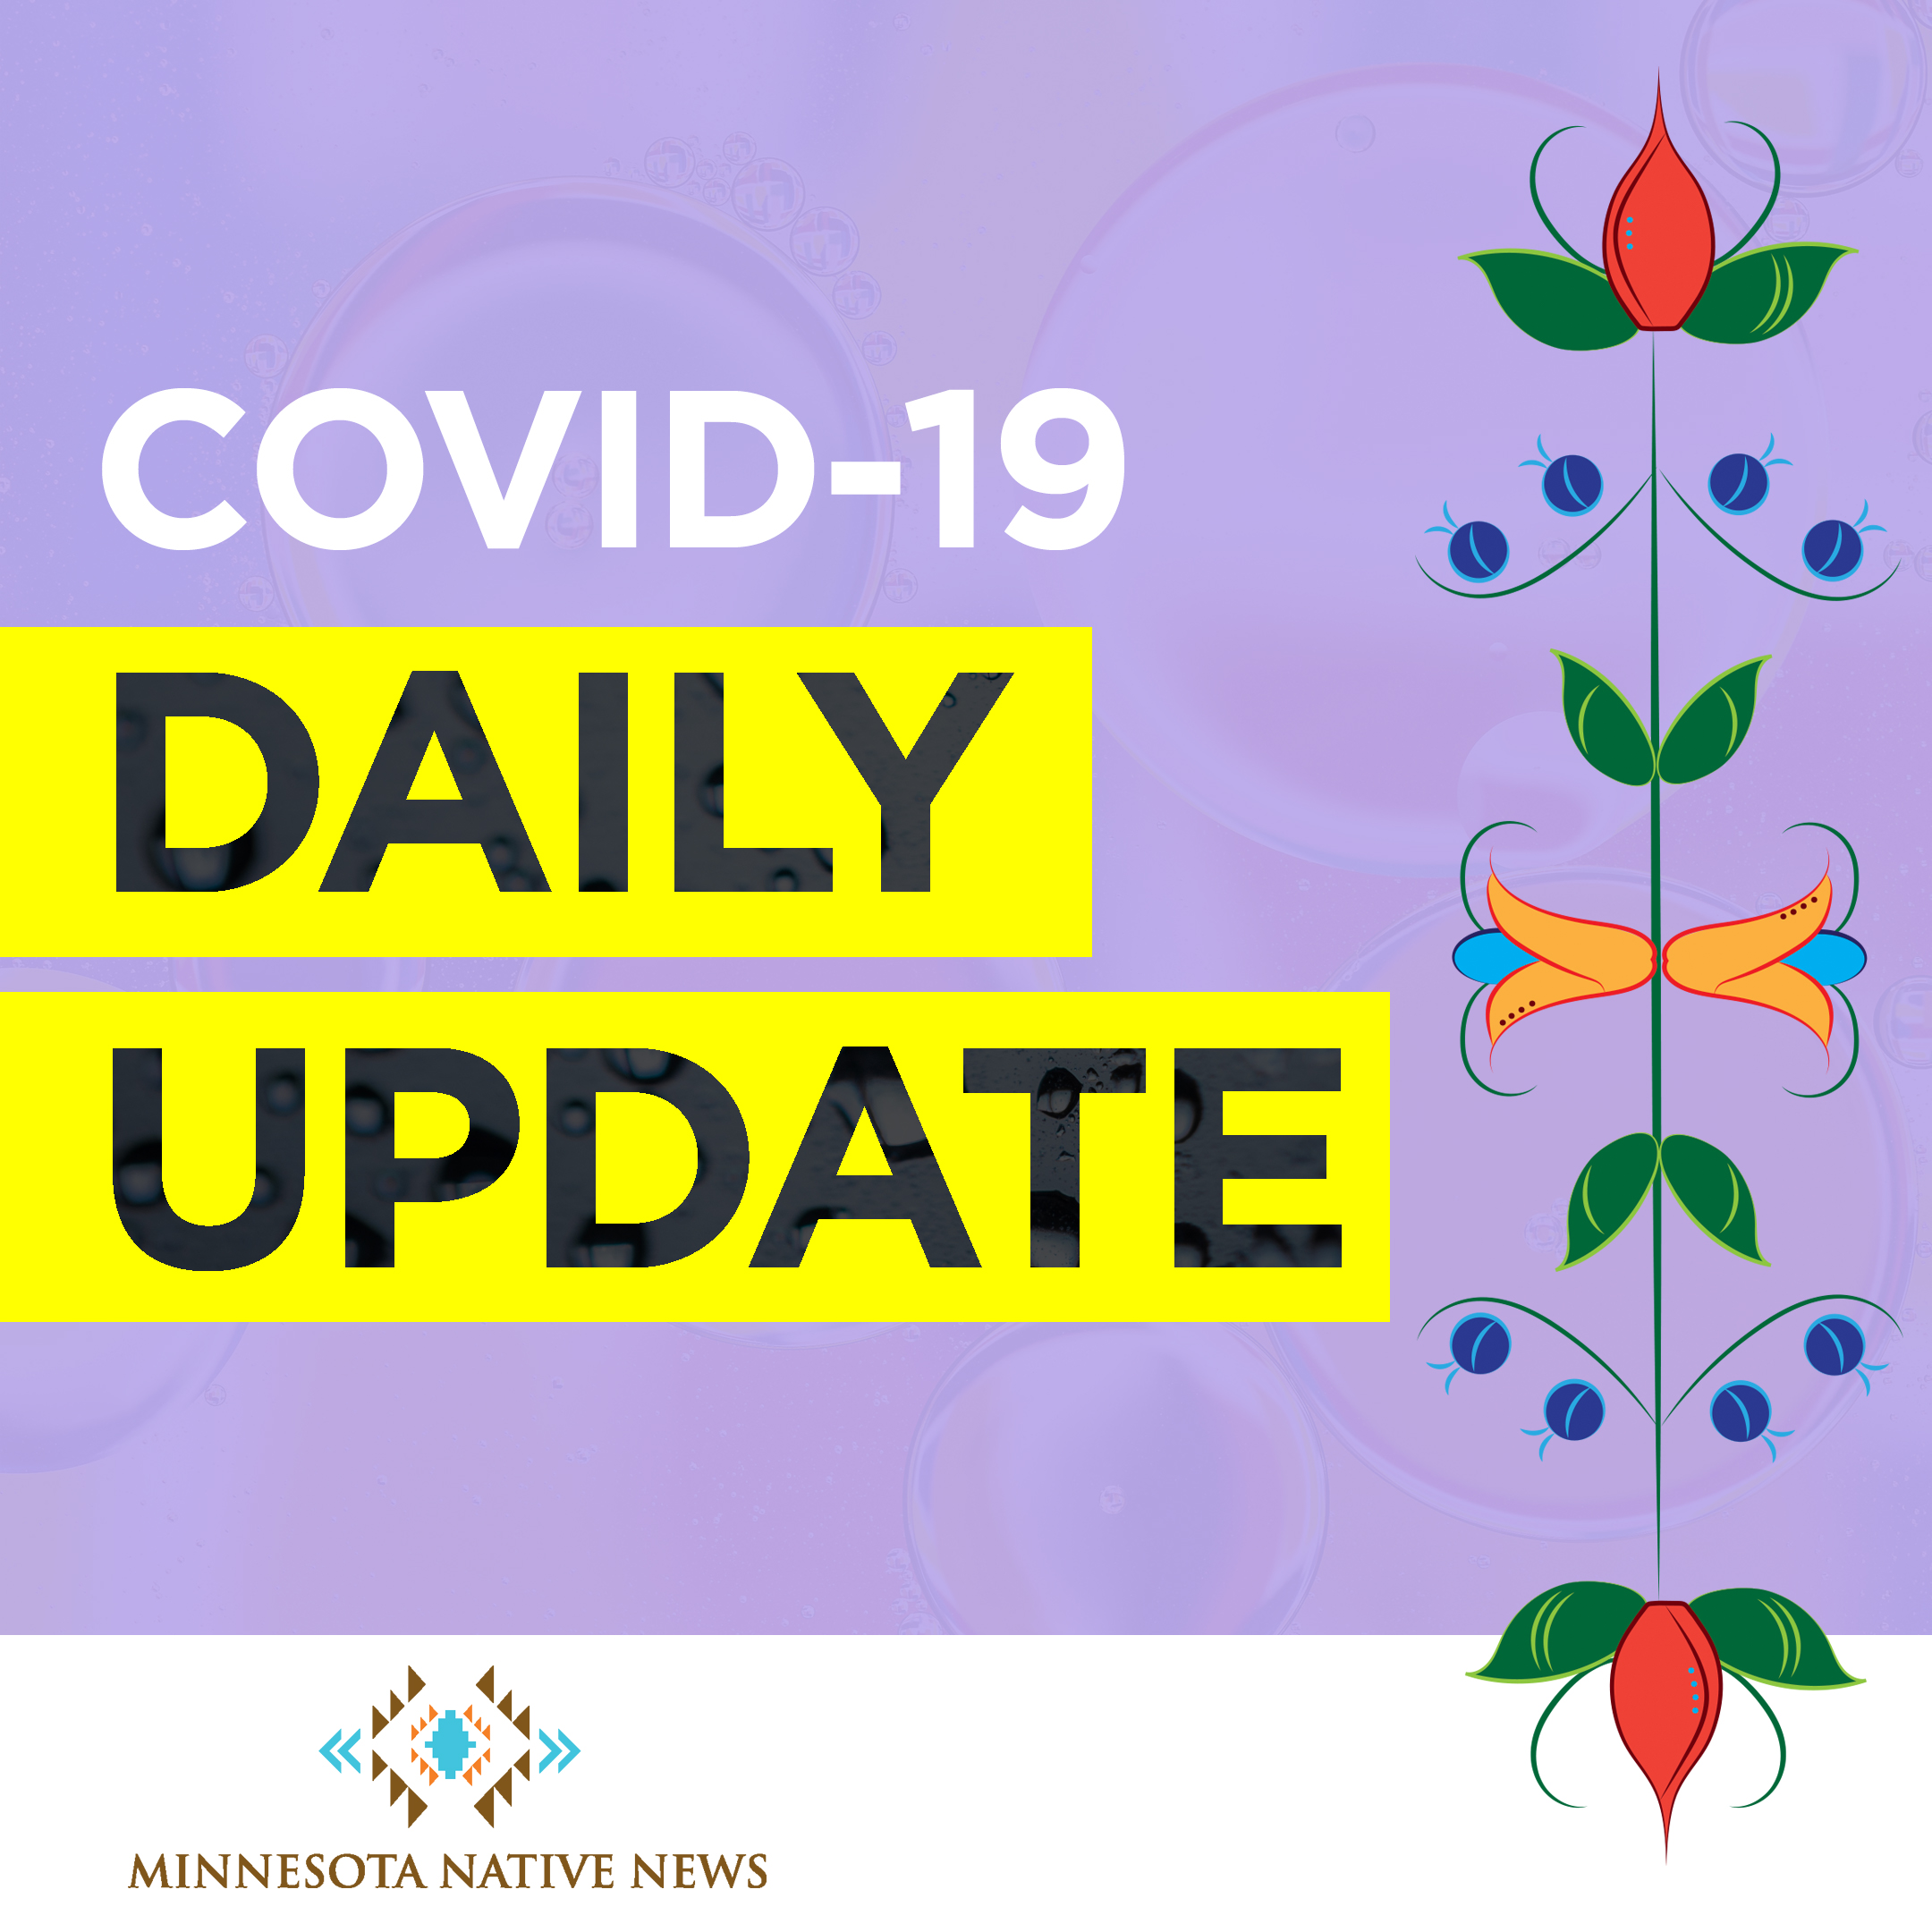 MDH Encourages Teens and Young Adults to Take Covid19 Seriously